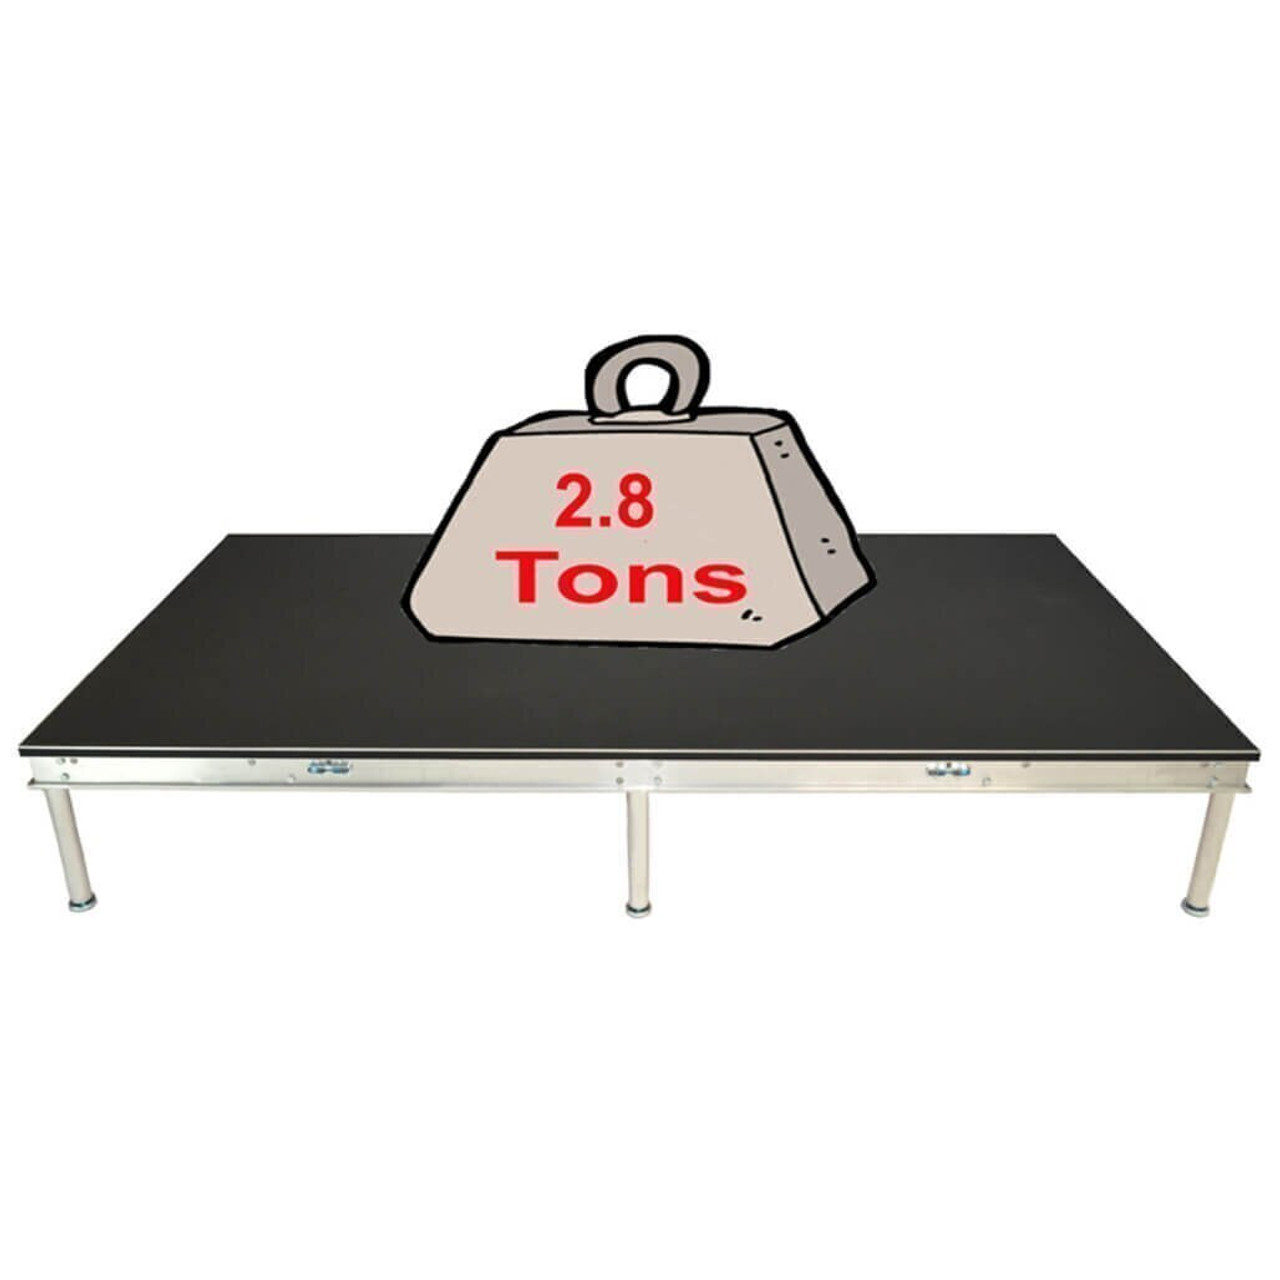 Top rated Quik Stage 8' x 24' High Portable Stage Package with Black Polyvinyl Non-Skid Surface. Additional Heights and Surfaces Available - Holds 2.8 tons per 4 x 8 or 1.4 tons per 4 x 4 when spread out evenly